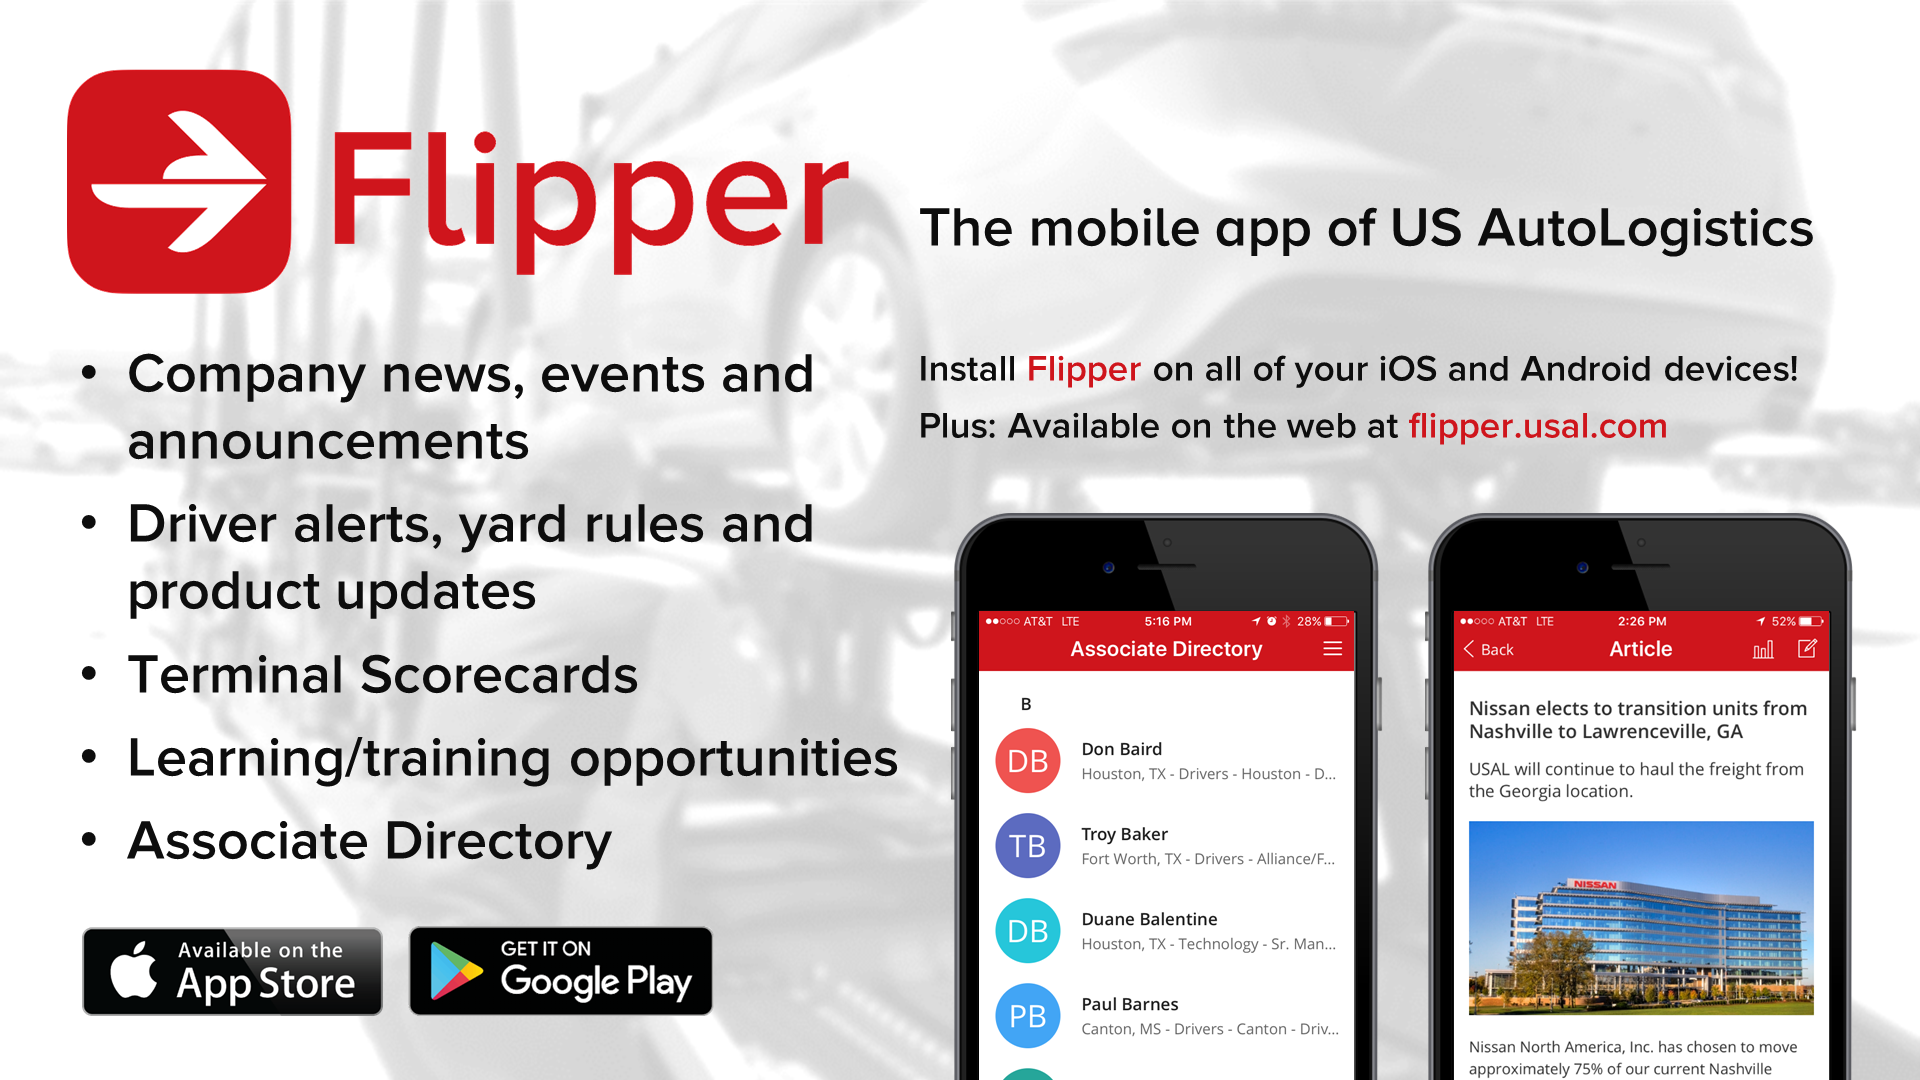 USAL employee app Flipper internal communication